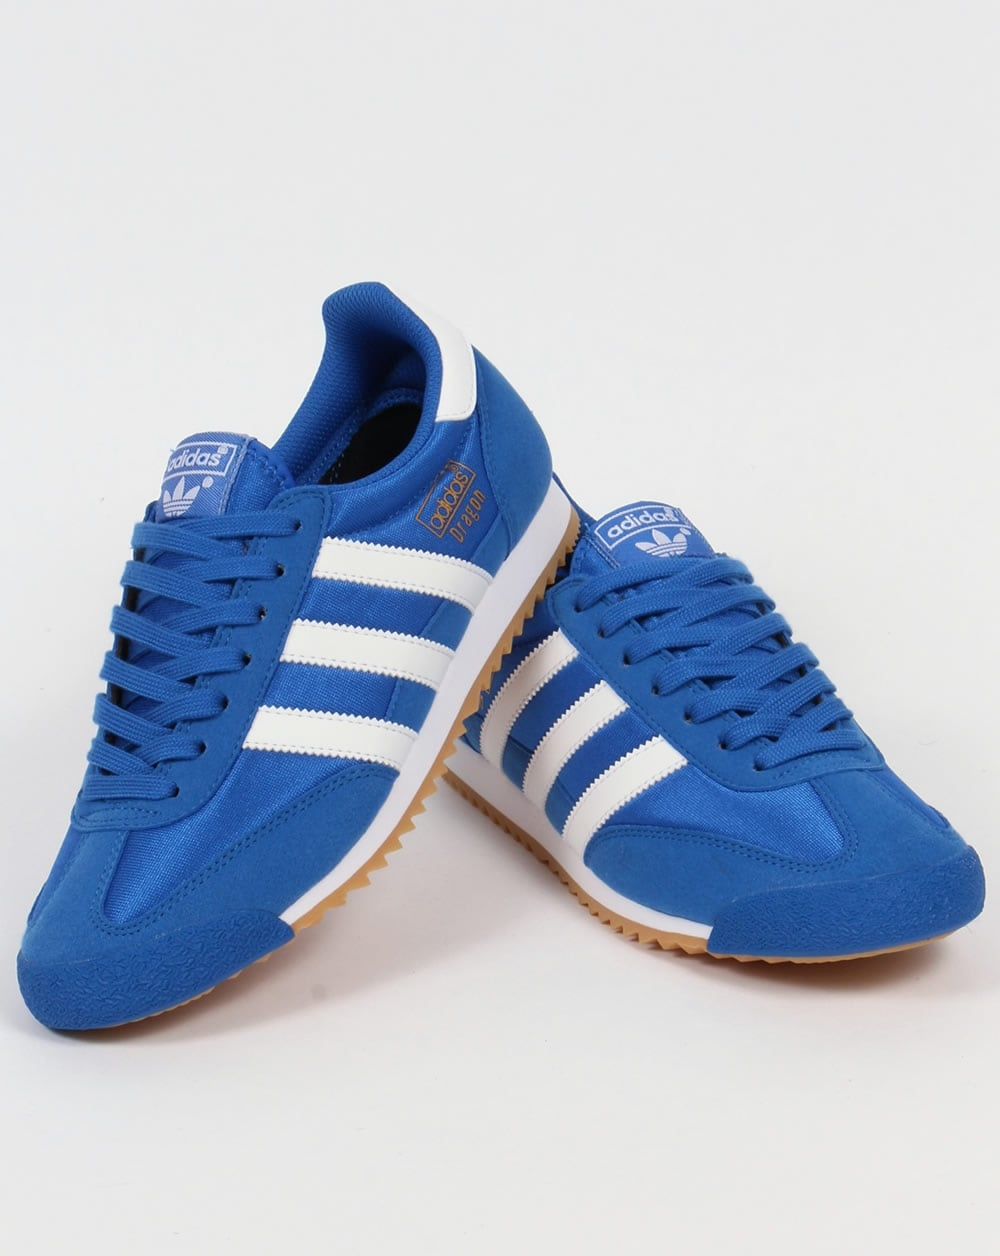 Adidas Trainers Adidas Dragon Trainers Blue/White